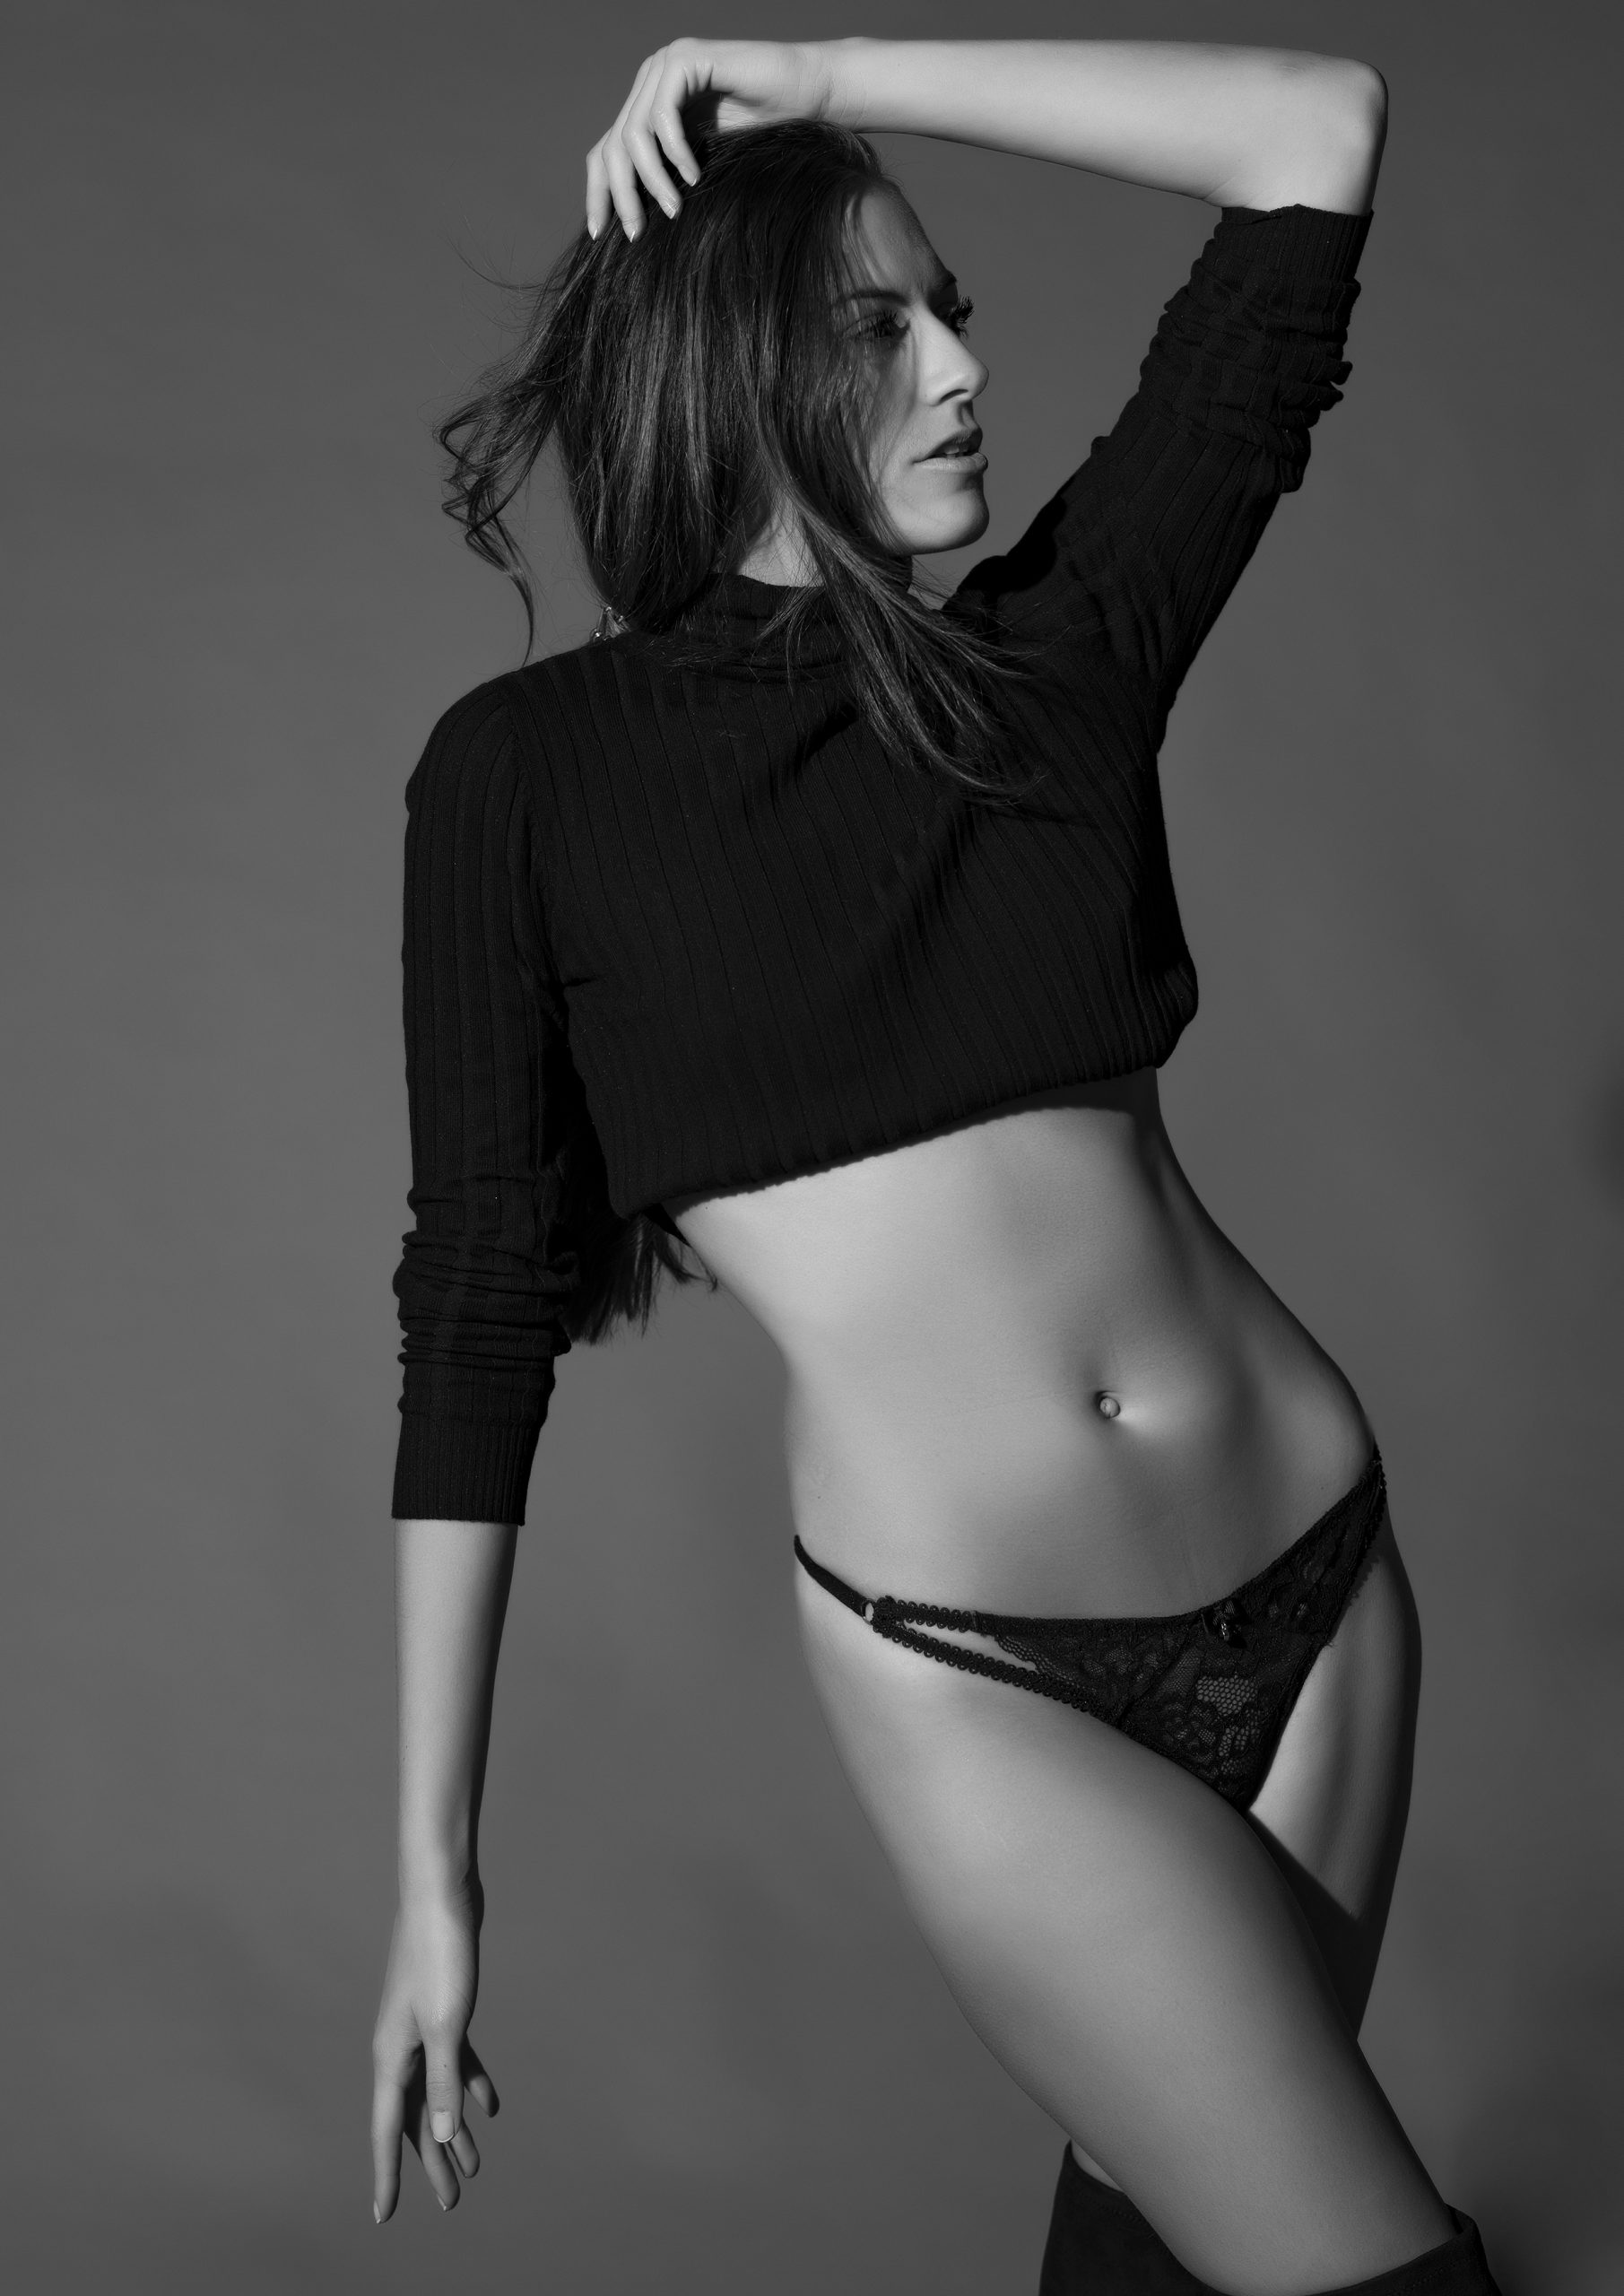 Black and white fashion photo of a model wearing black knickers and short black jumper